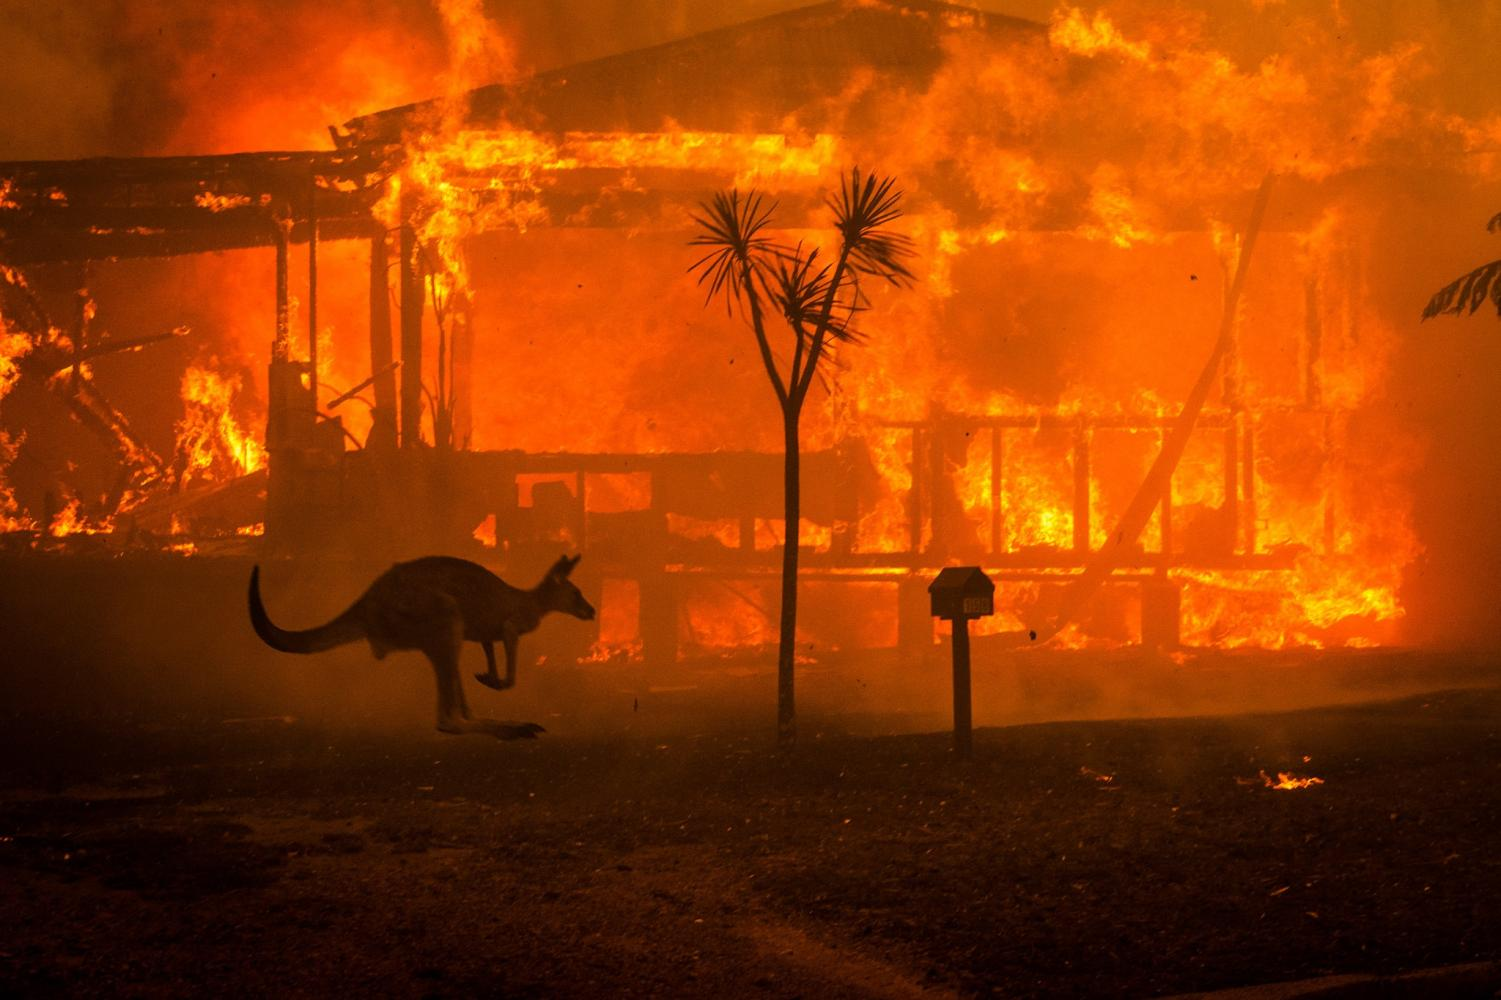 A kangaroo fleeing past a burning home in New South Wales, Australia. Photo taken during the day on New Year's Eve.